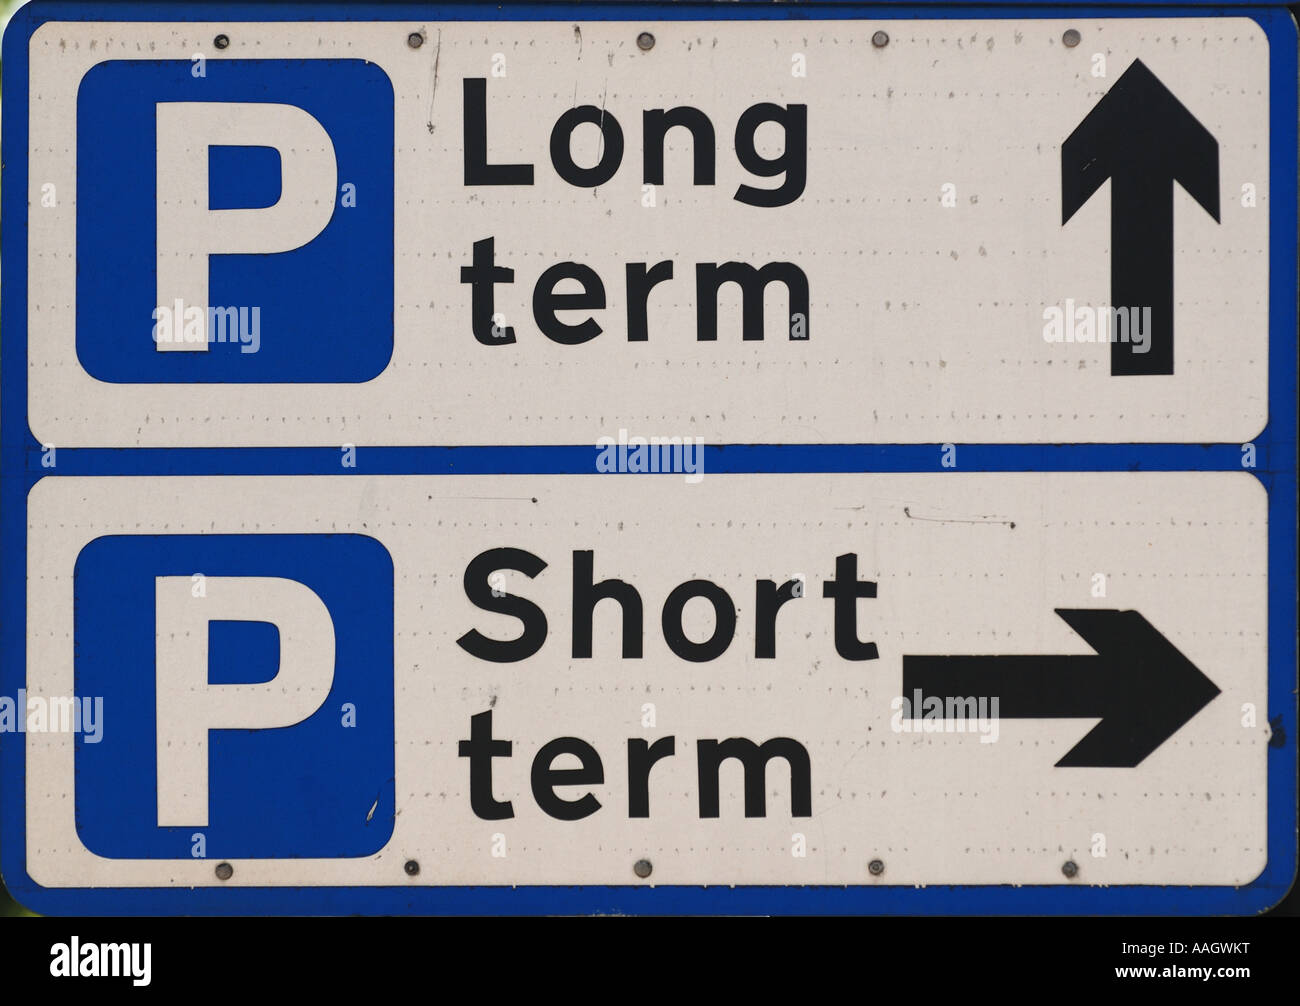 Long And Short Term : Parking long term and short road sign traffic